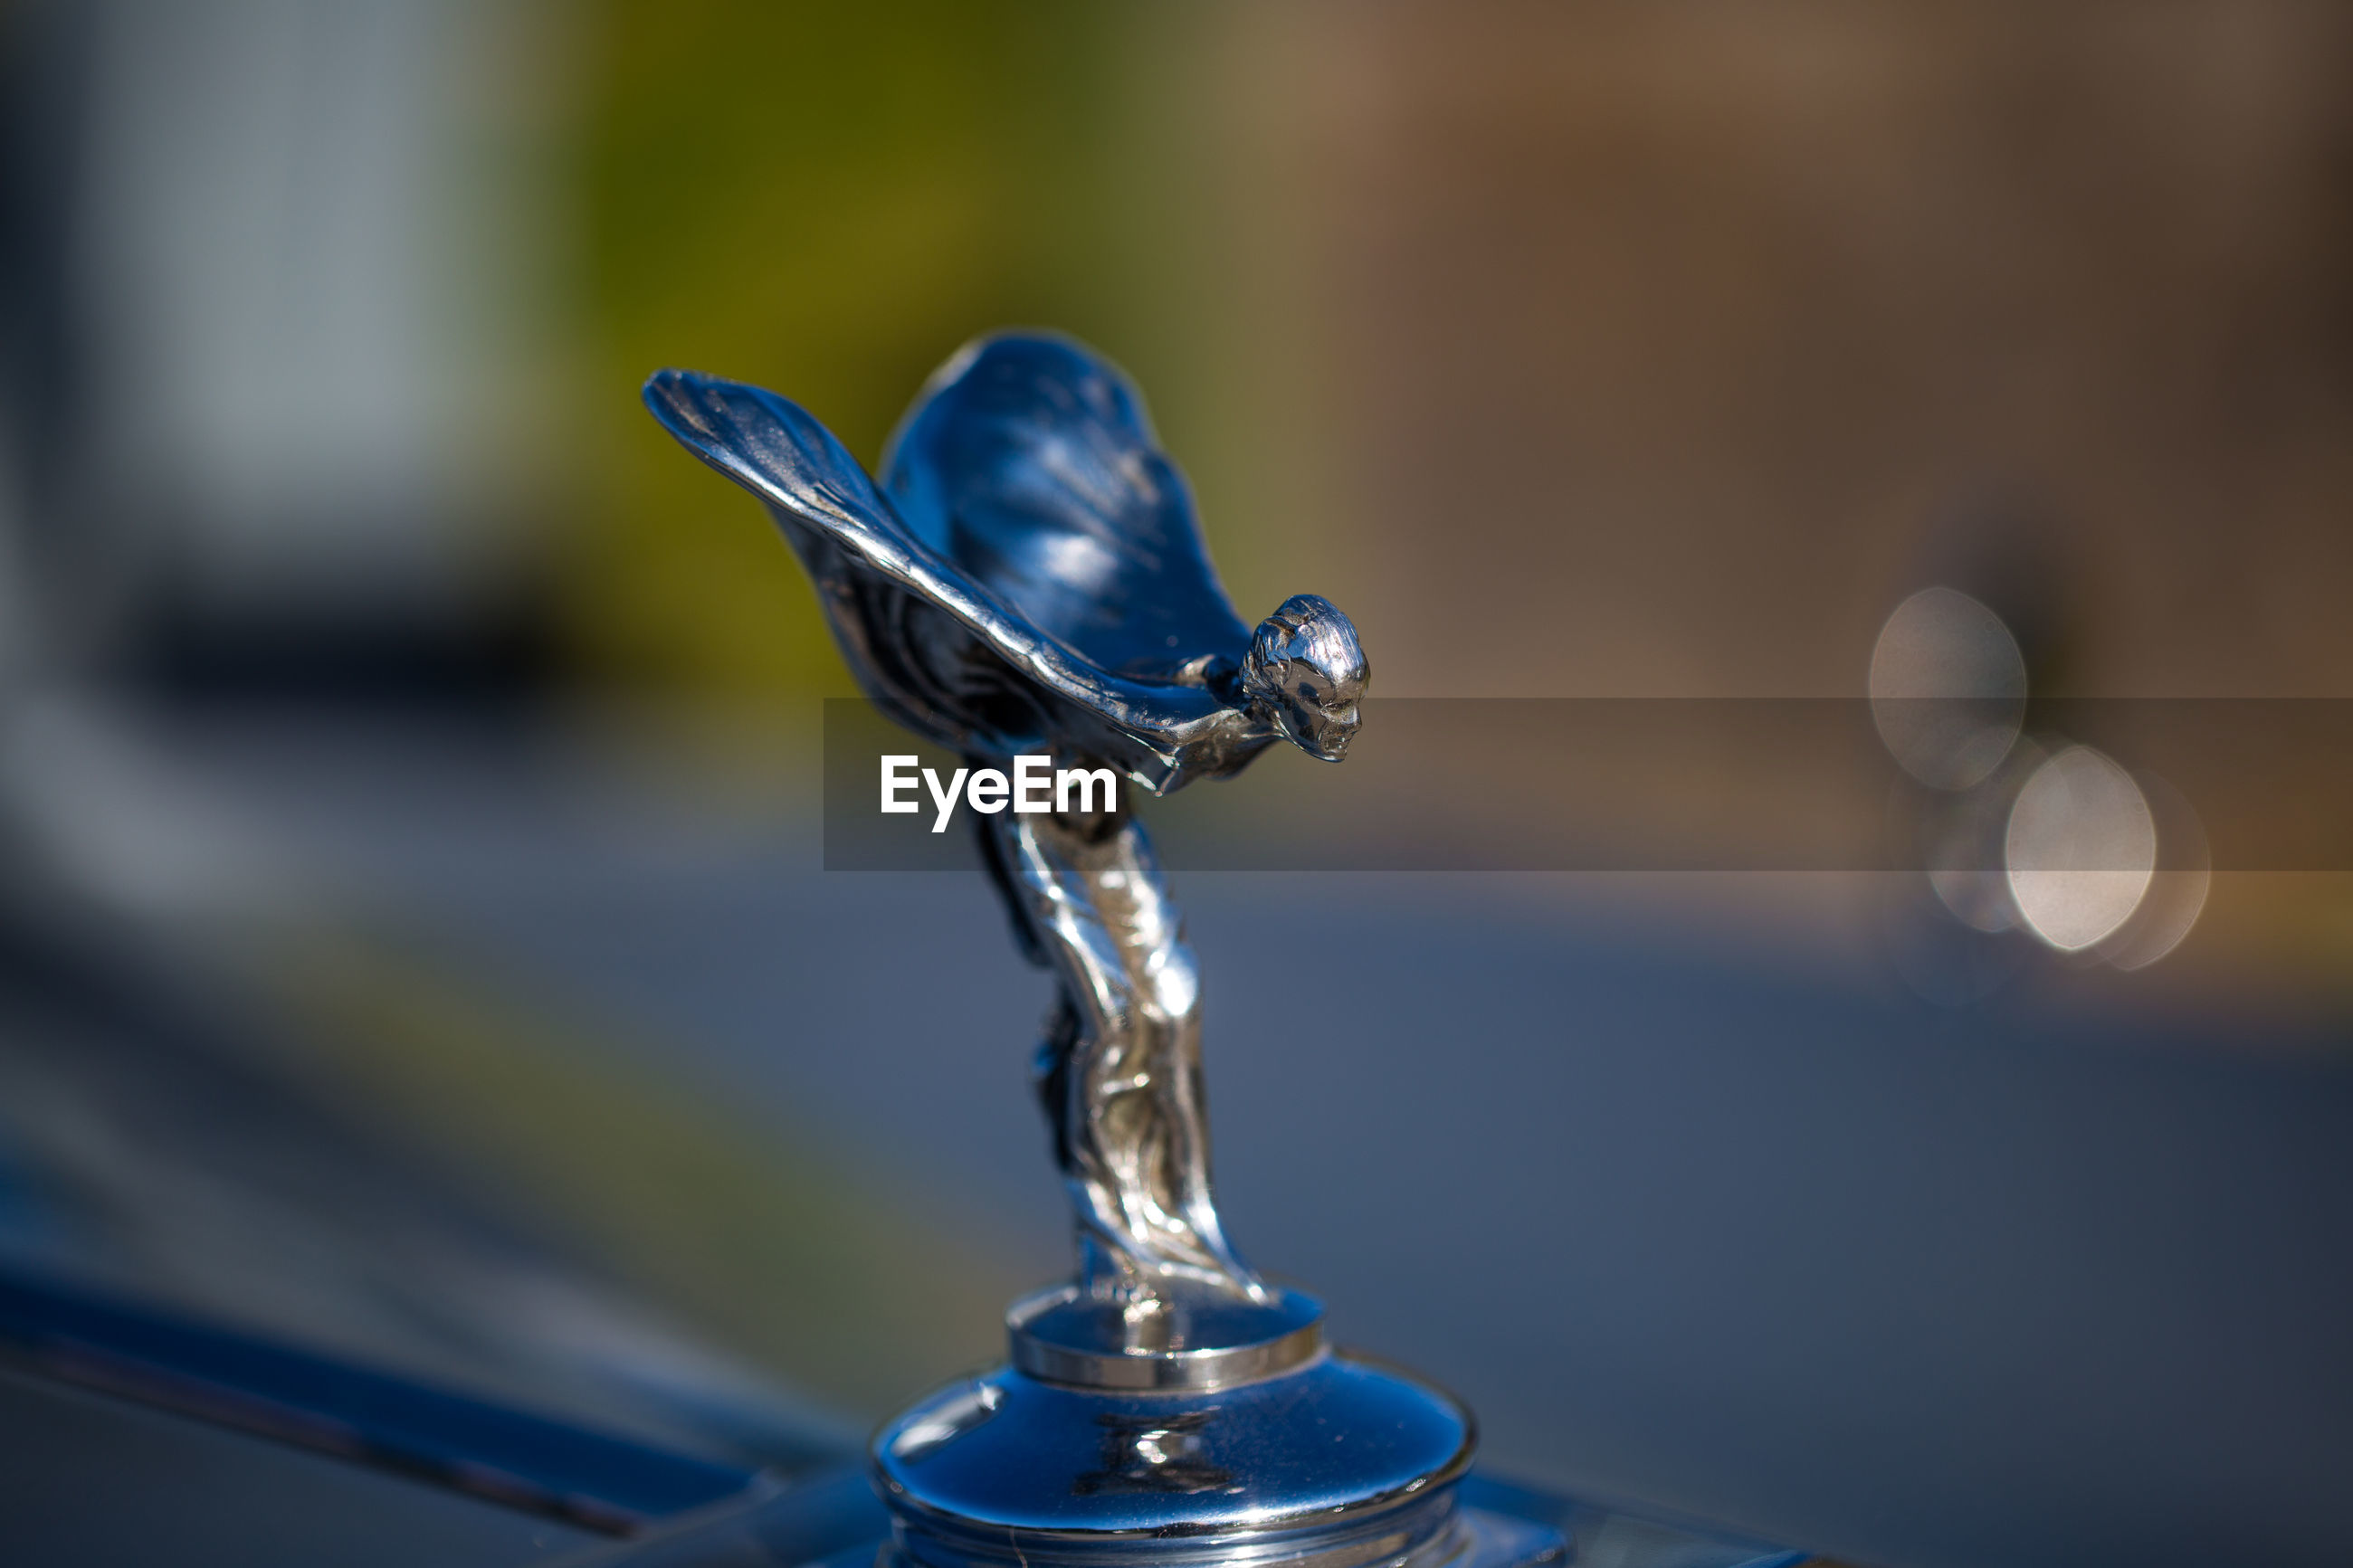 focus on foreground, close-up, no people, selective focus, day, metal, blue, outdoors, shape, still life, motion, glass - material, nature, table, sphere, transparent, drop, reflection, silver colored